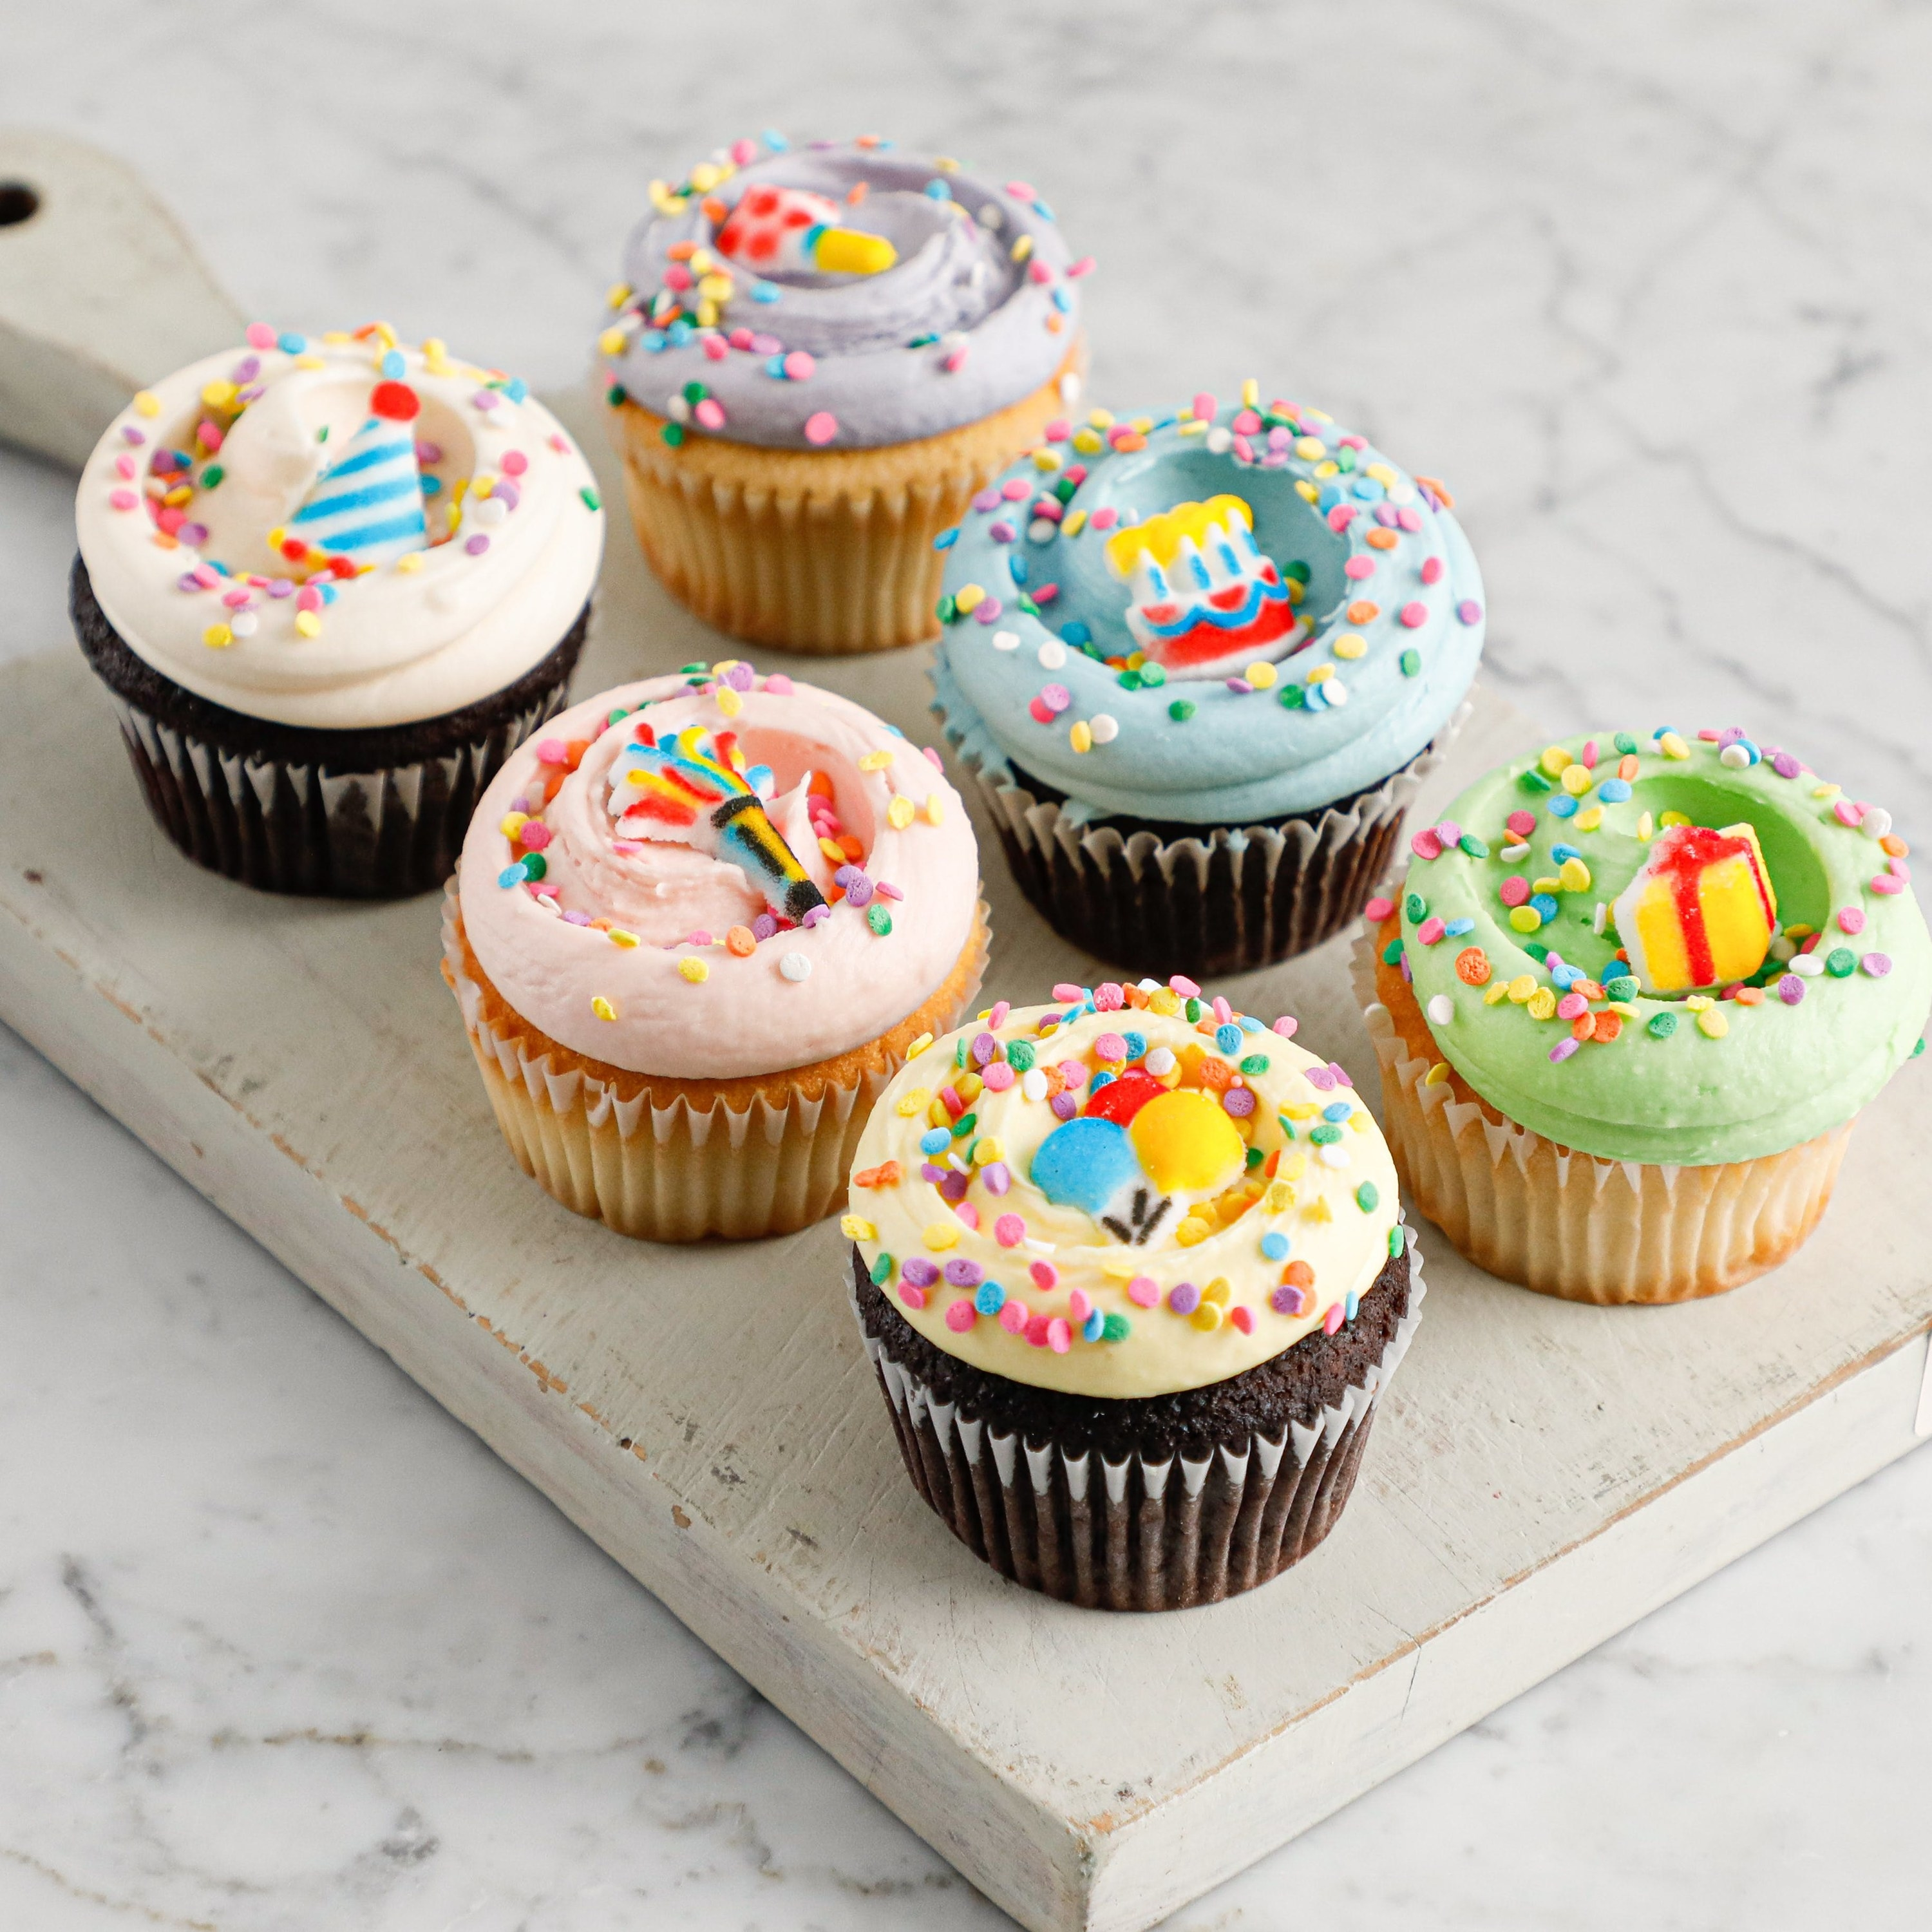 six vanilla and chocolate cupcakes with frosting and sprinkles